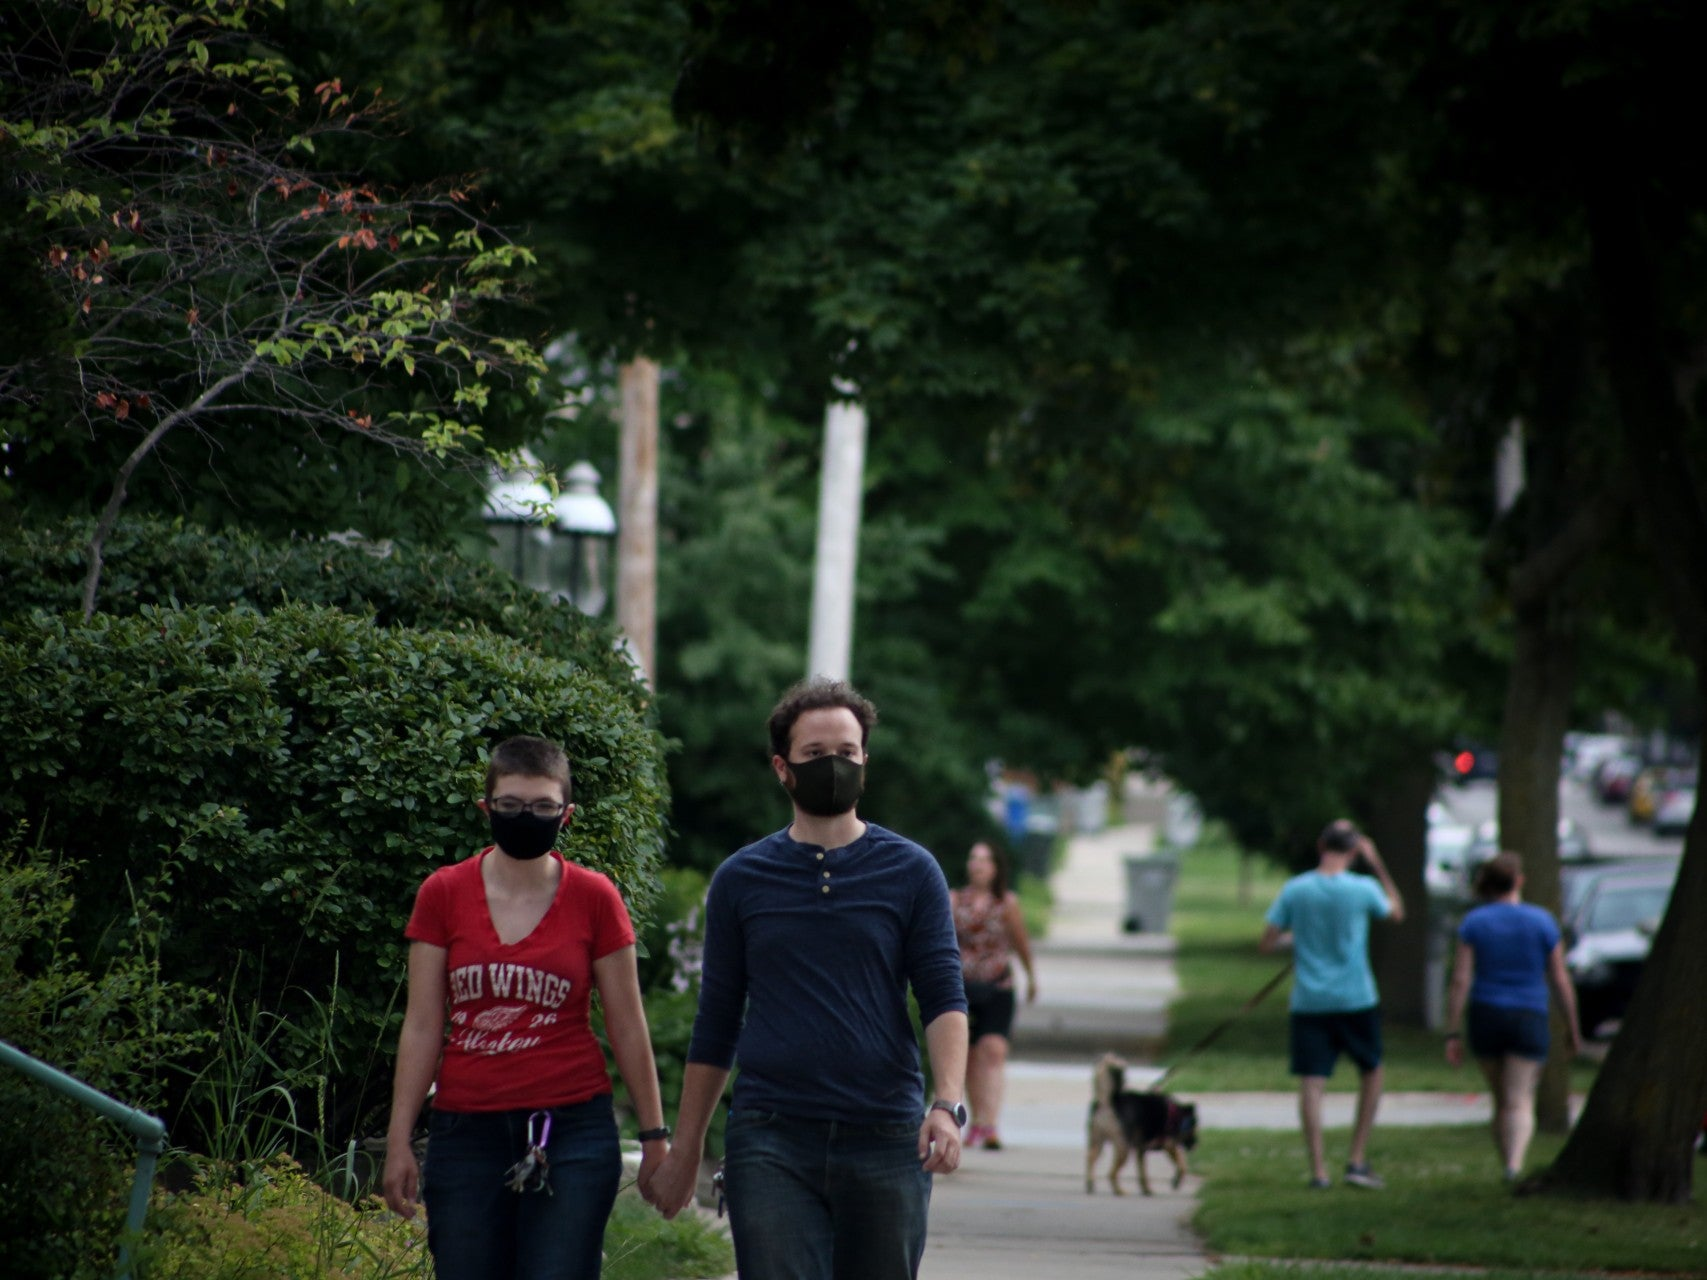 people walking around with masks in the suburbs